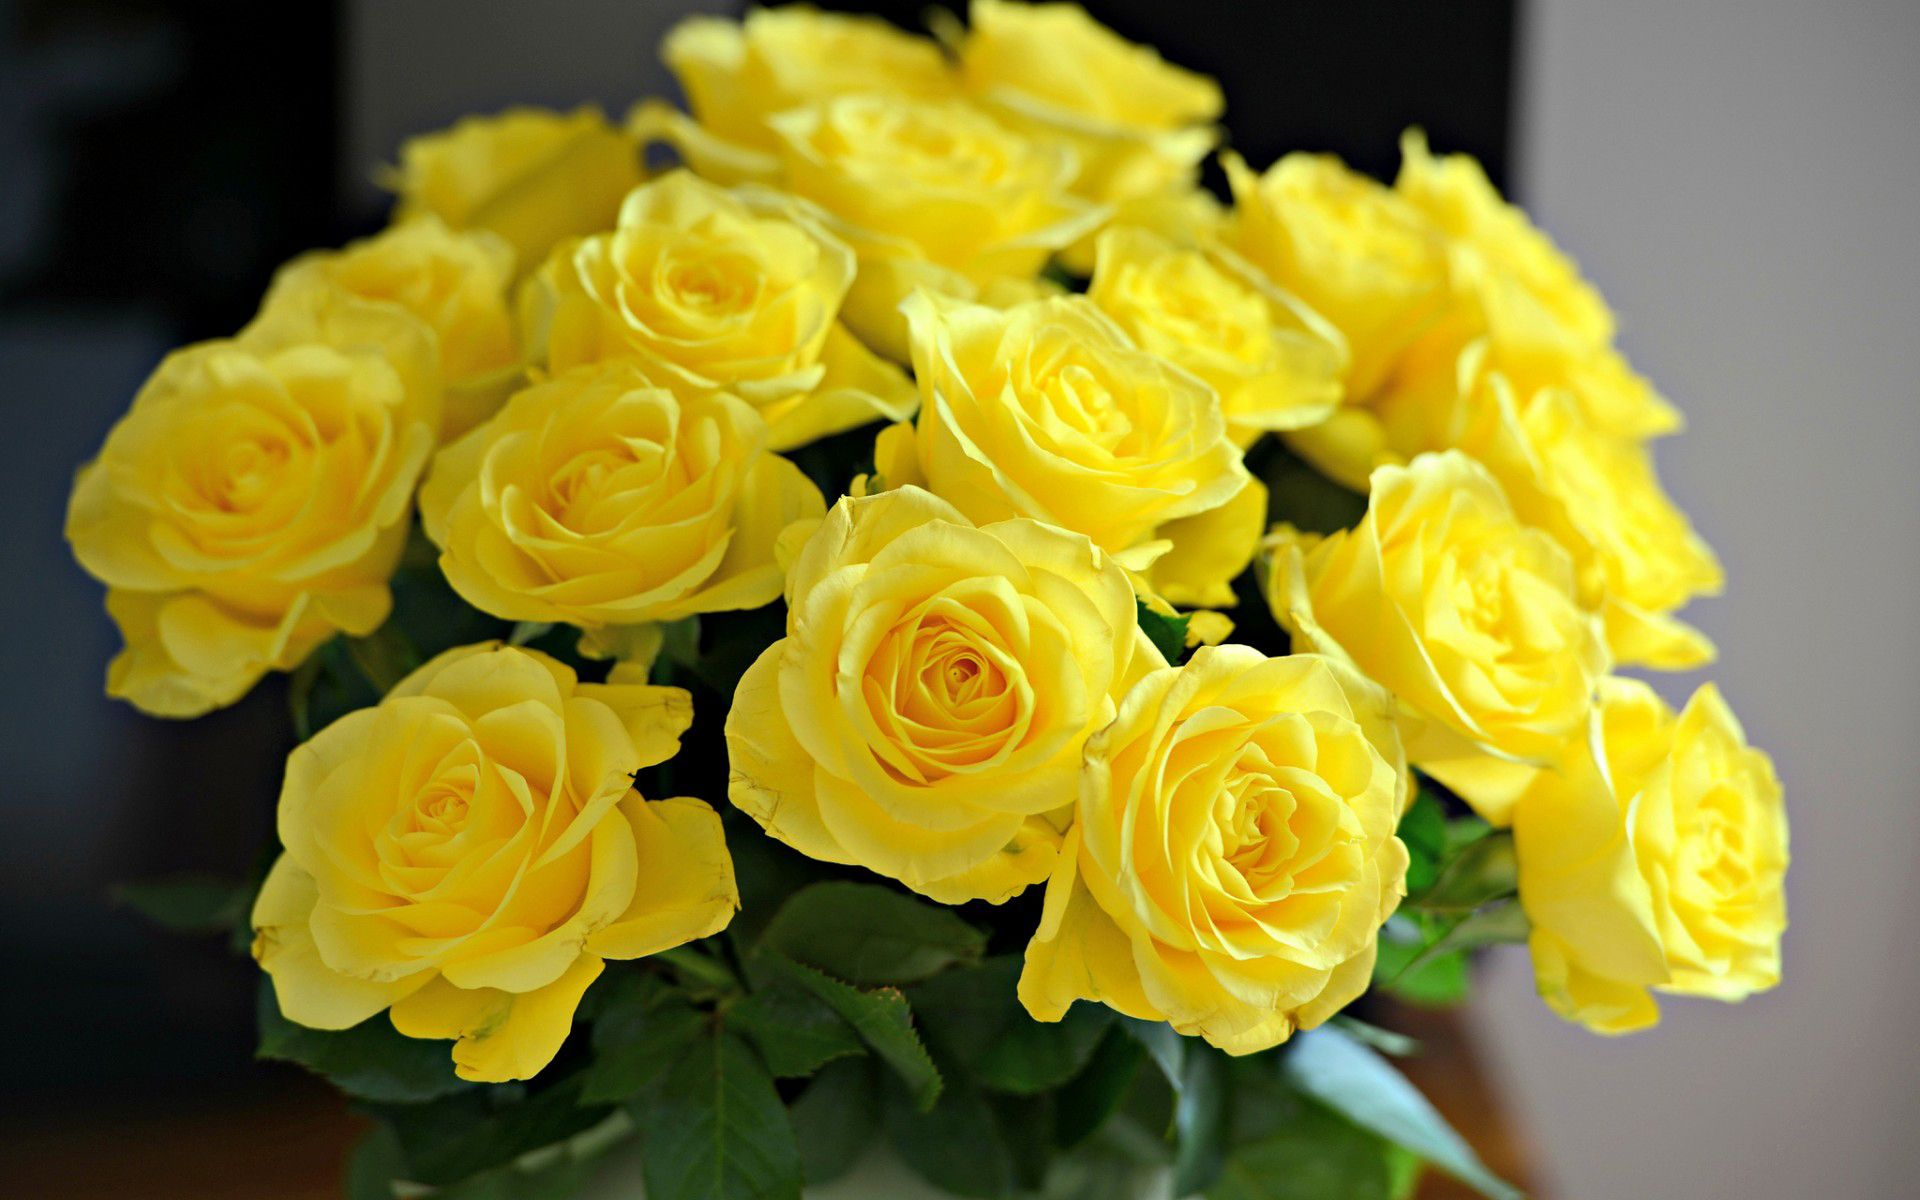 yellow rose wallpapers high quality download free 2048a—1360 yellow rose image wallpapers 55